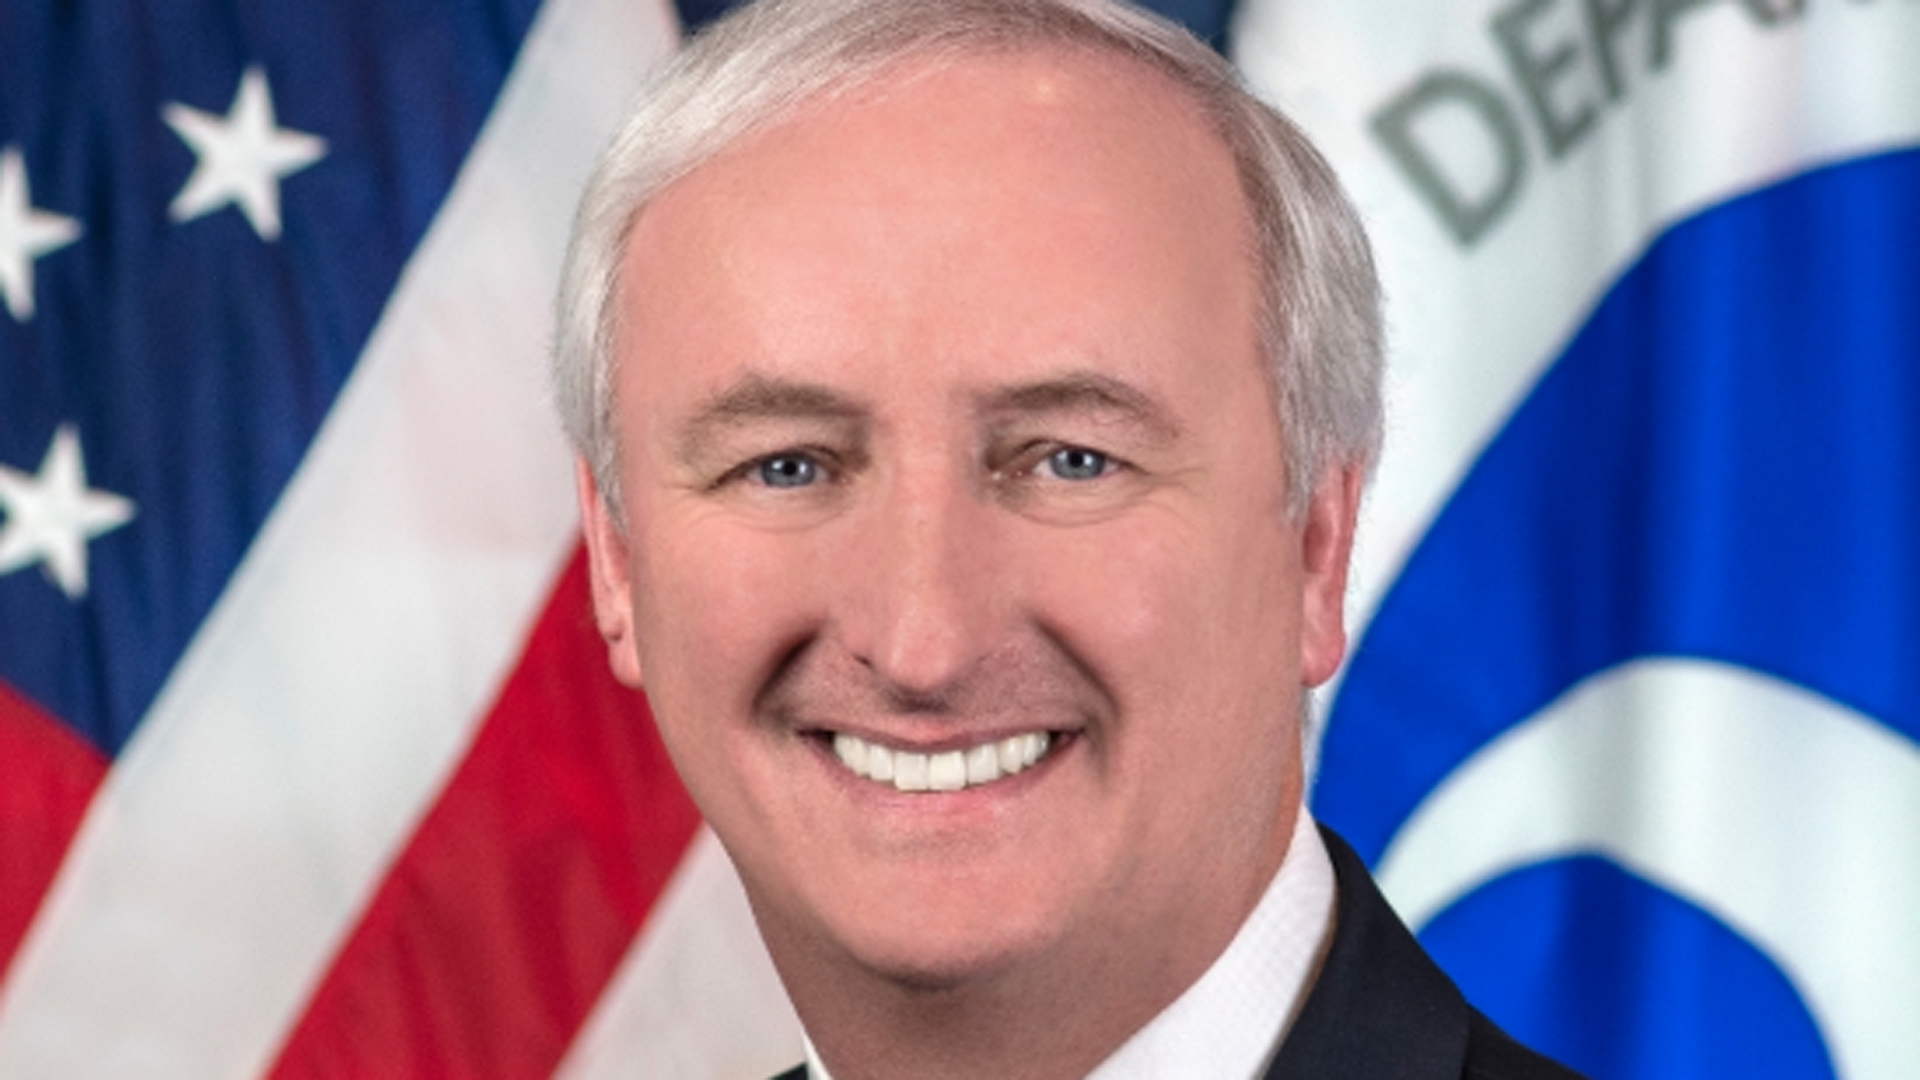 Jeffrey Rosen appears in an undated photo provided by the U.S. Department of Transportation.